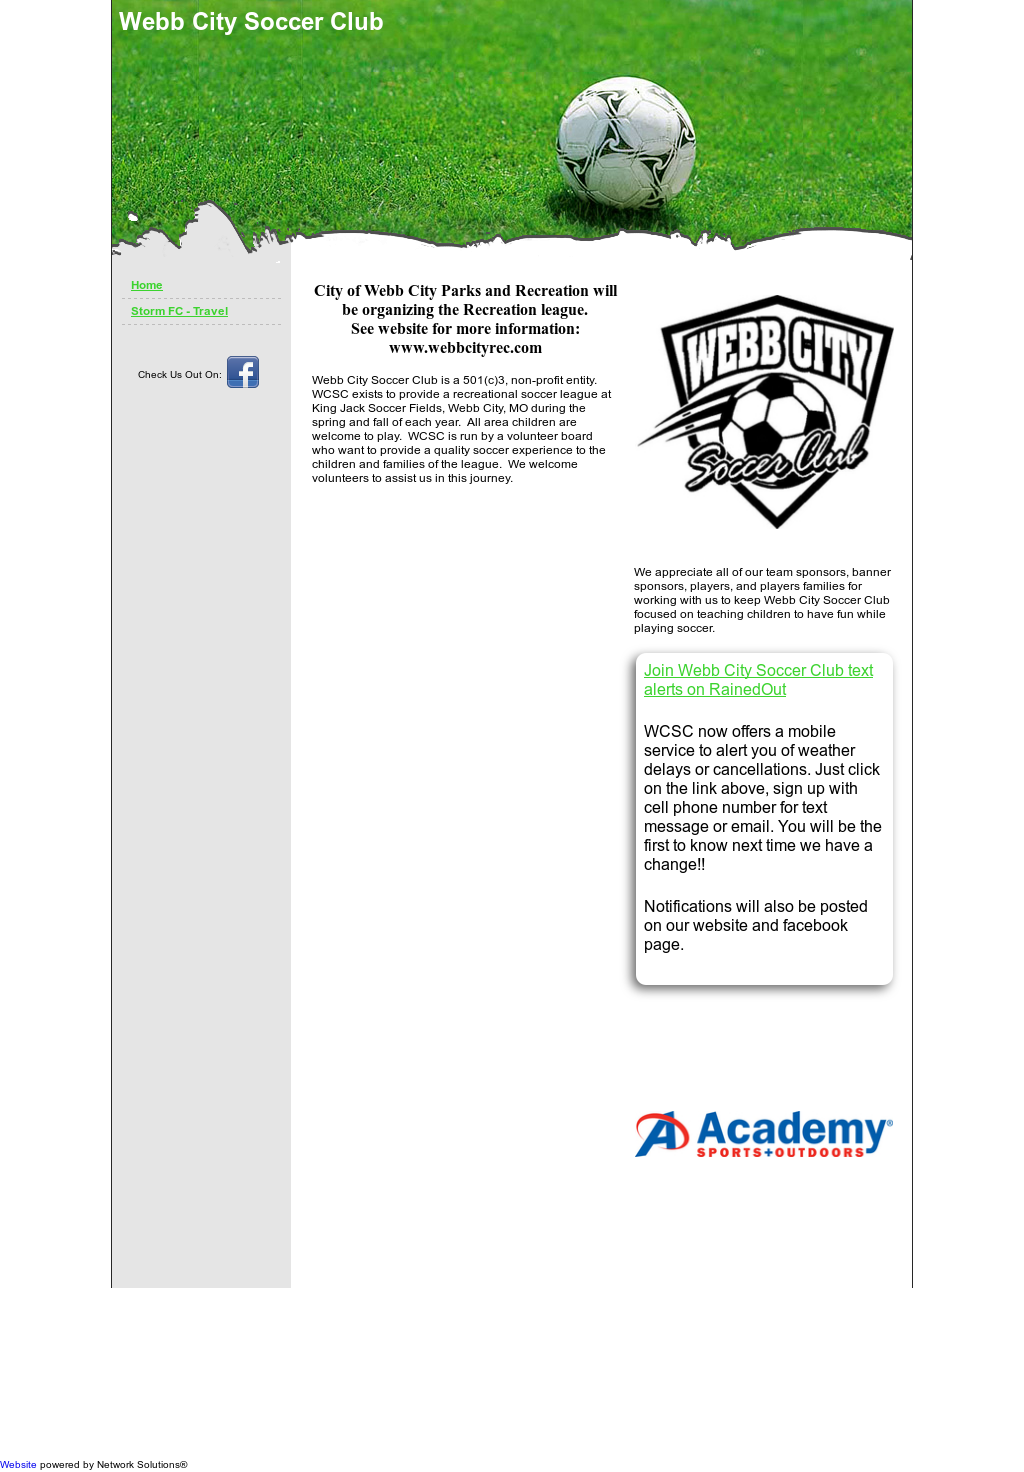 Webb City Soccer Club Competitors, Revenue and Employees